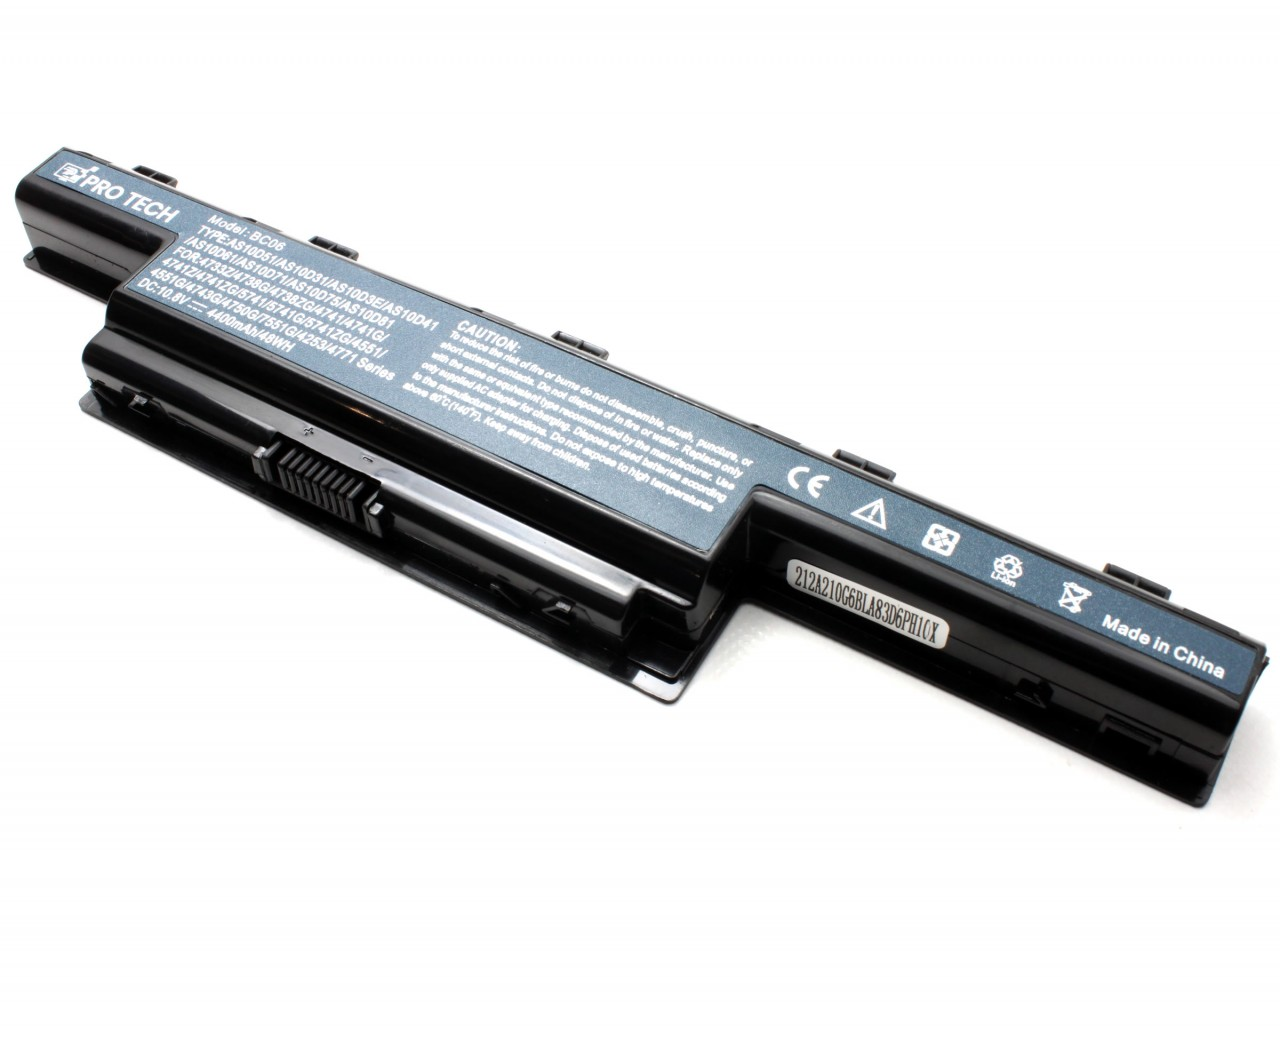 Baterie Packard Bell EasyNote NM87 6 celule imagine powerlaptop.ro 2021